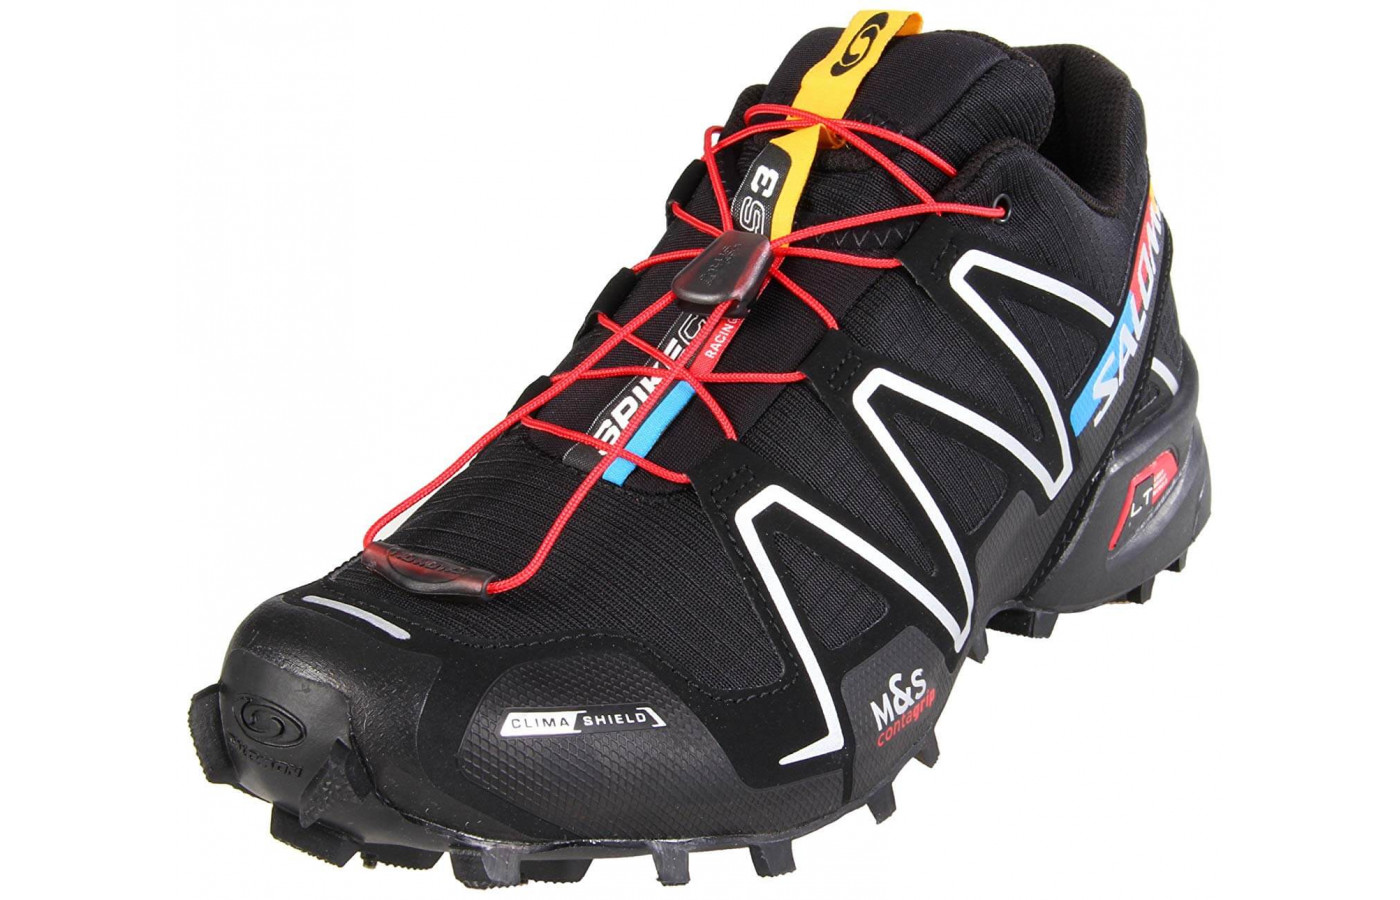 Salomon Spikecross 3 Main